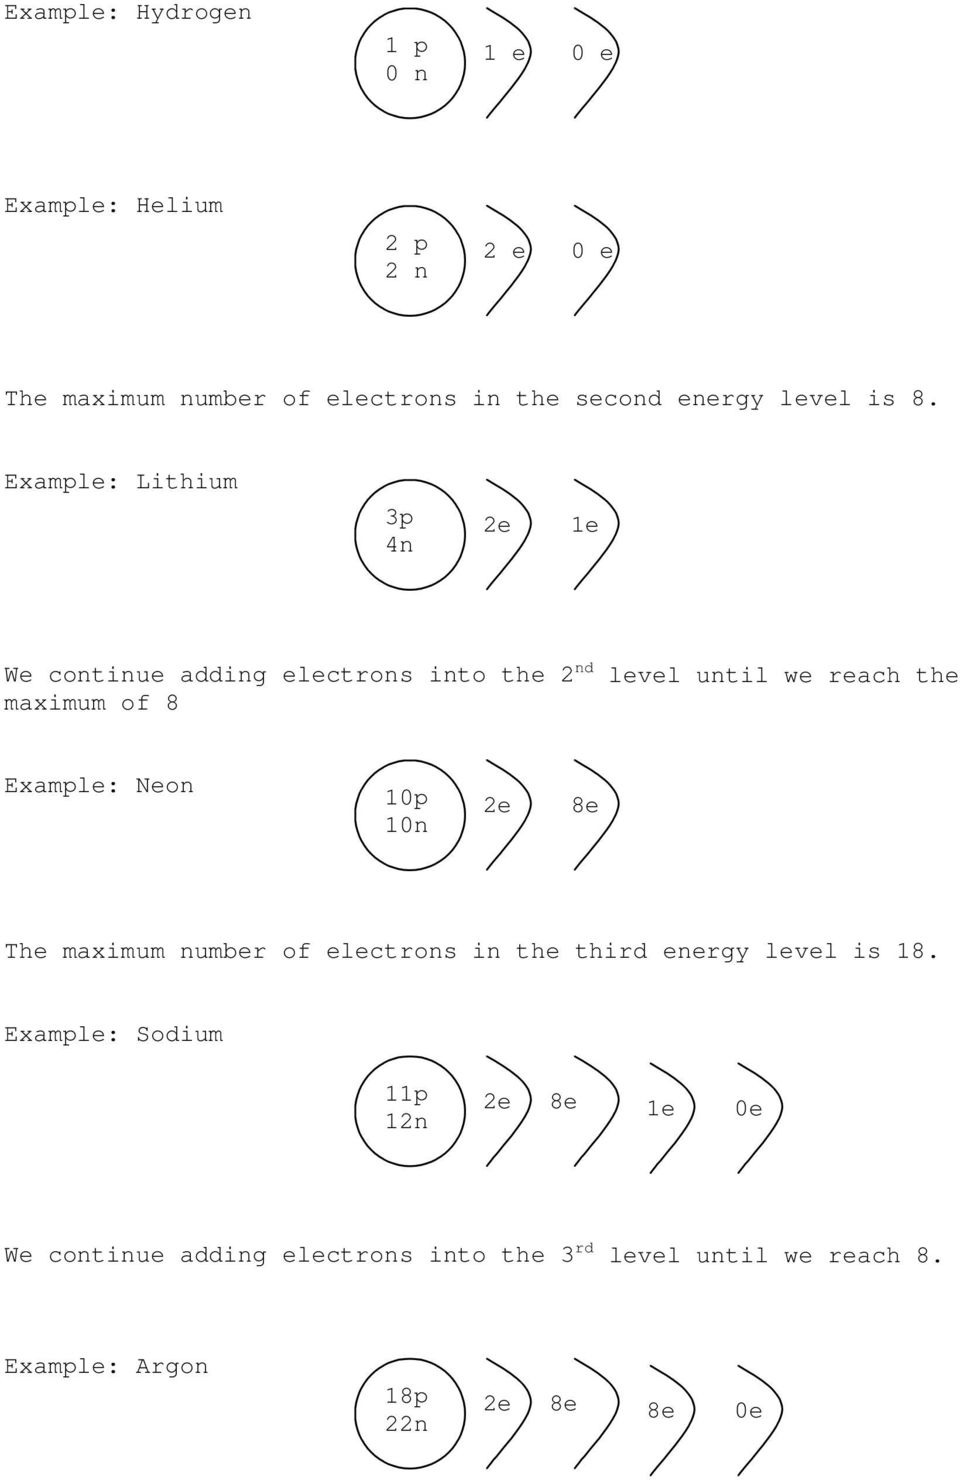 medium resolution of example lithium 3p 4n 1e we continue adding electrons into the 2 nd level until